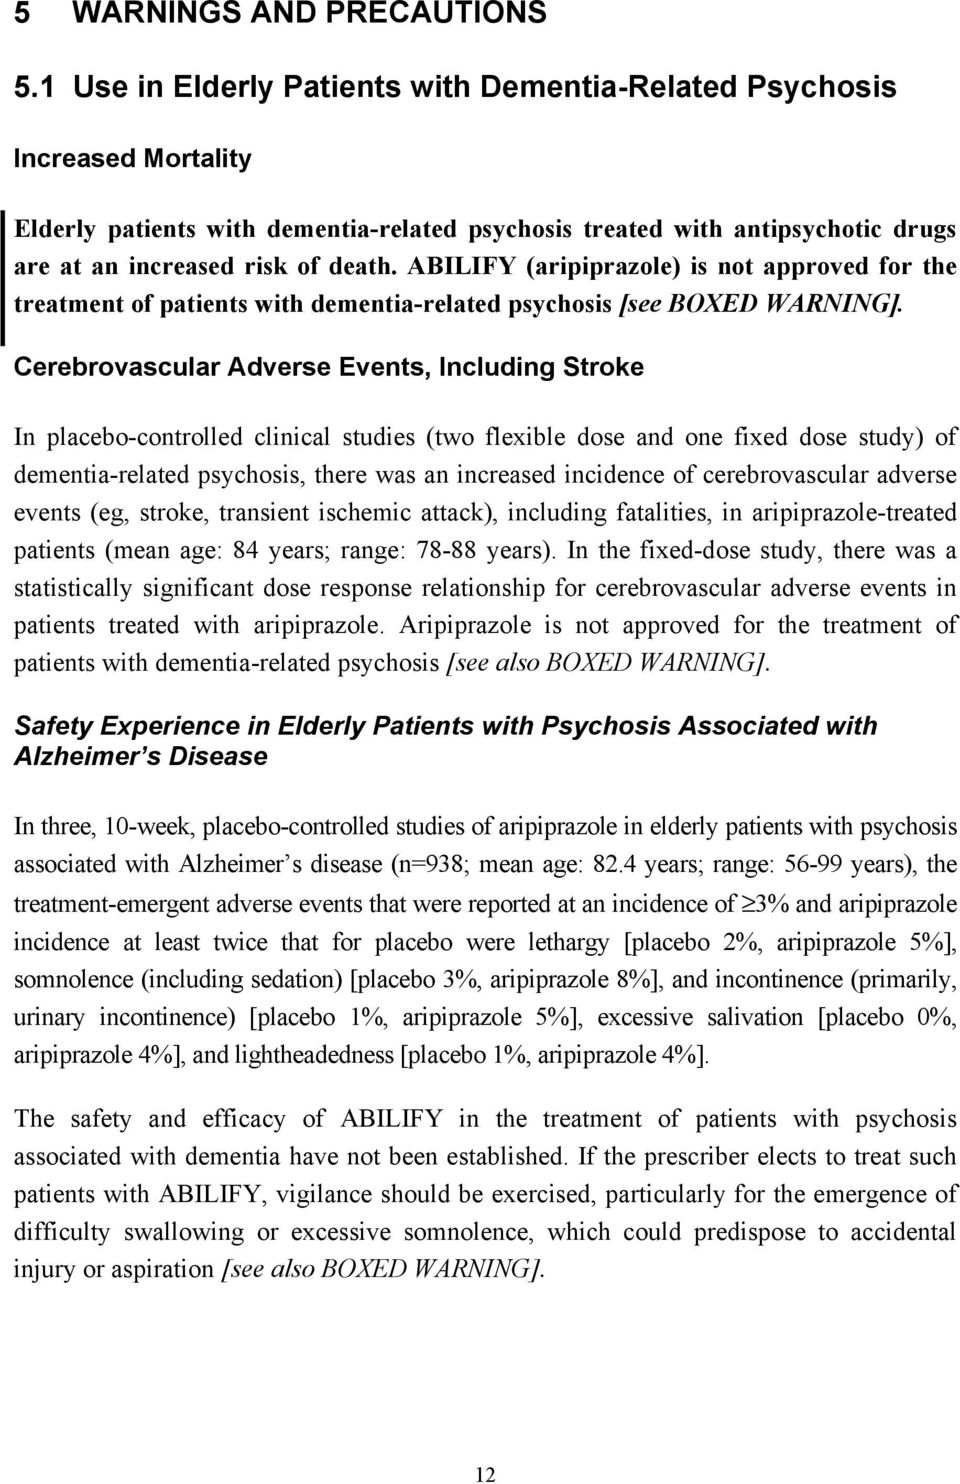 ABILIFY (aripiprazole) is not approved for the treatment of patients with dementia-related psychosis [see BOXED WARNING].